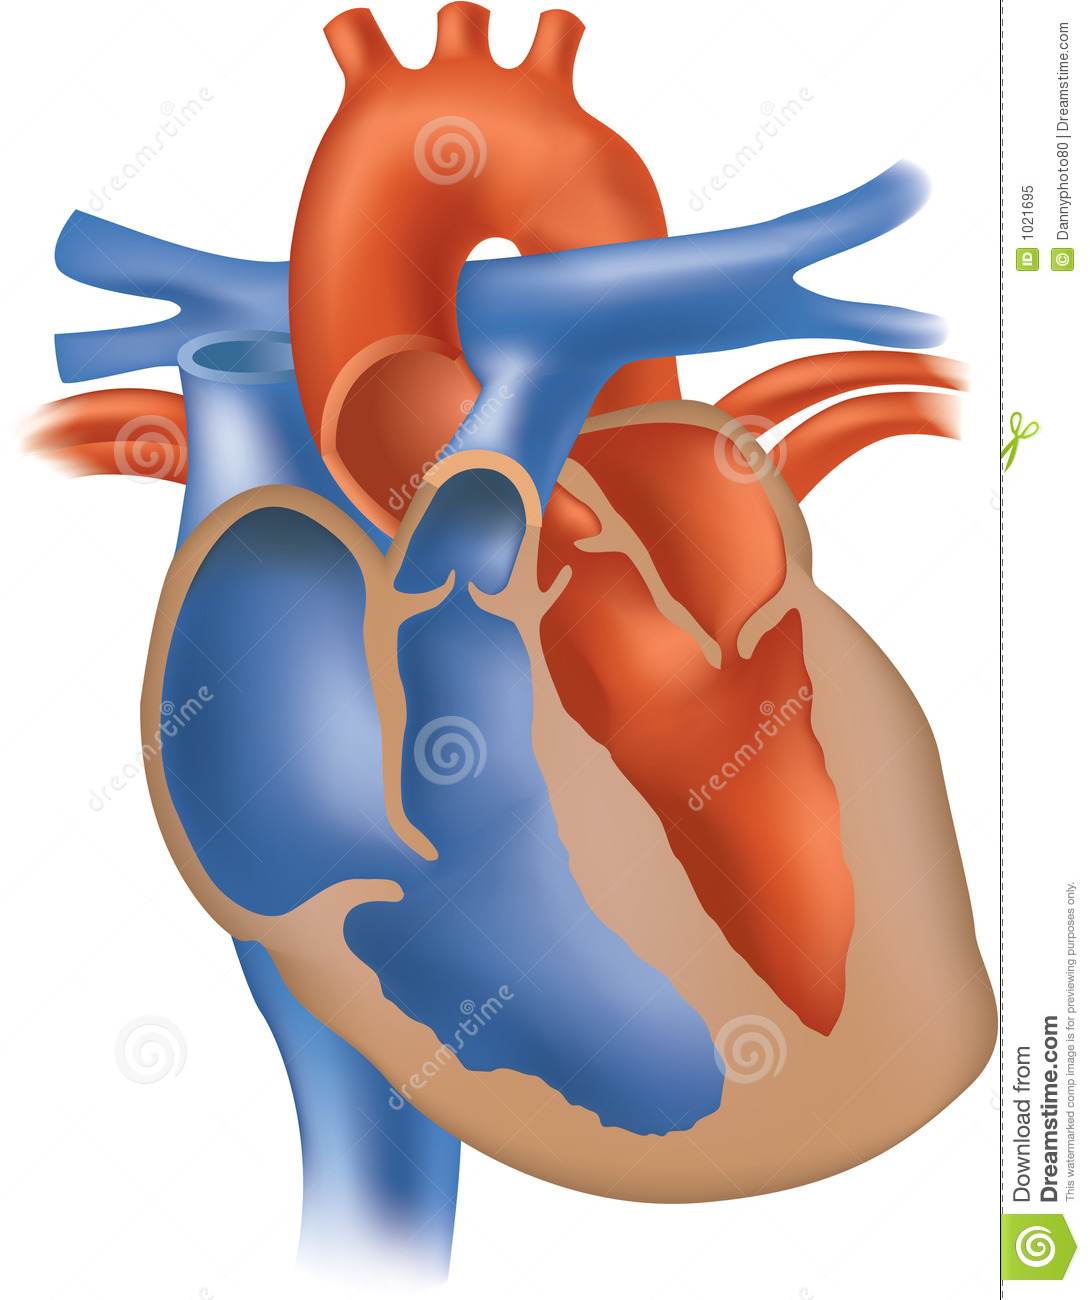 unlabeled heart diagram cross section cat5 wiring faceplate illustration stock